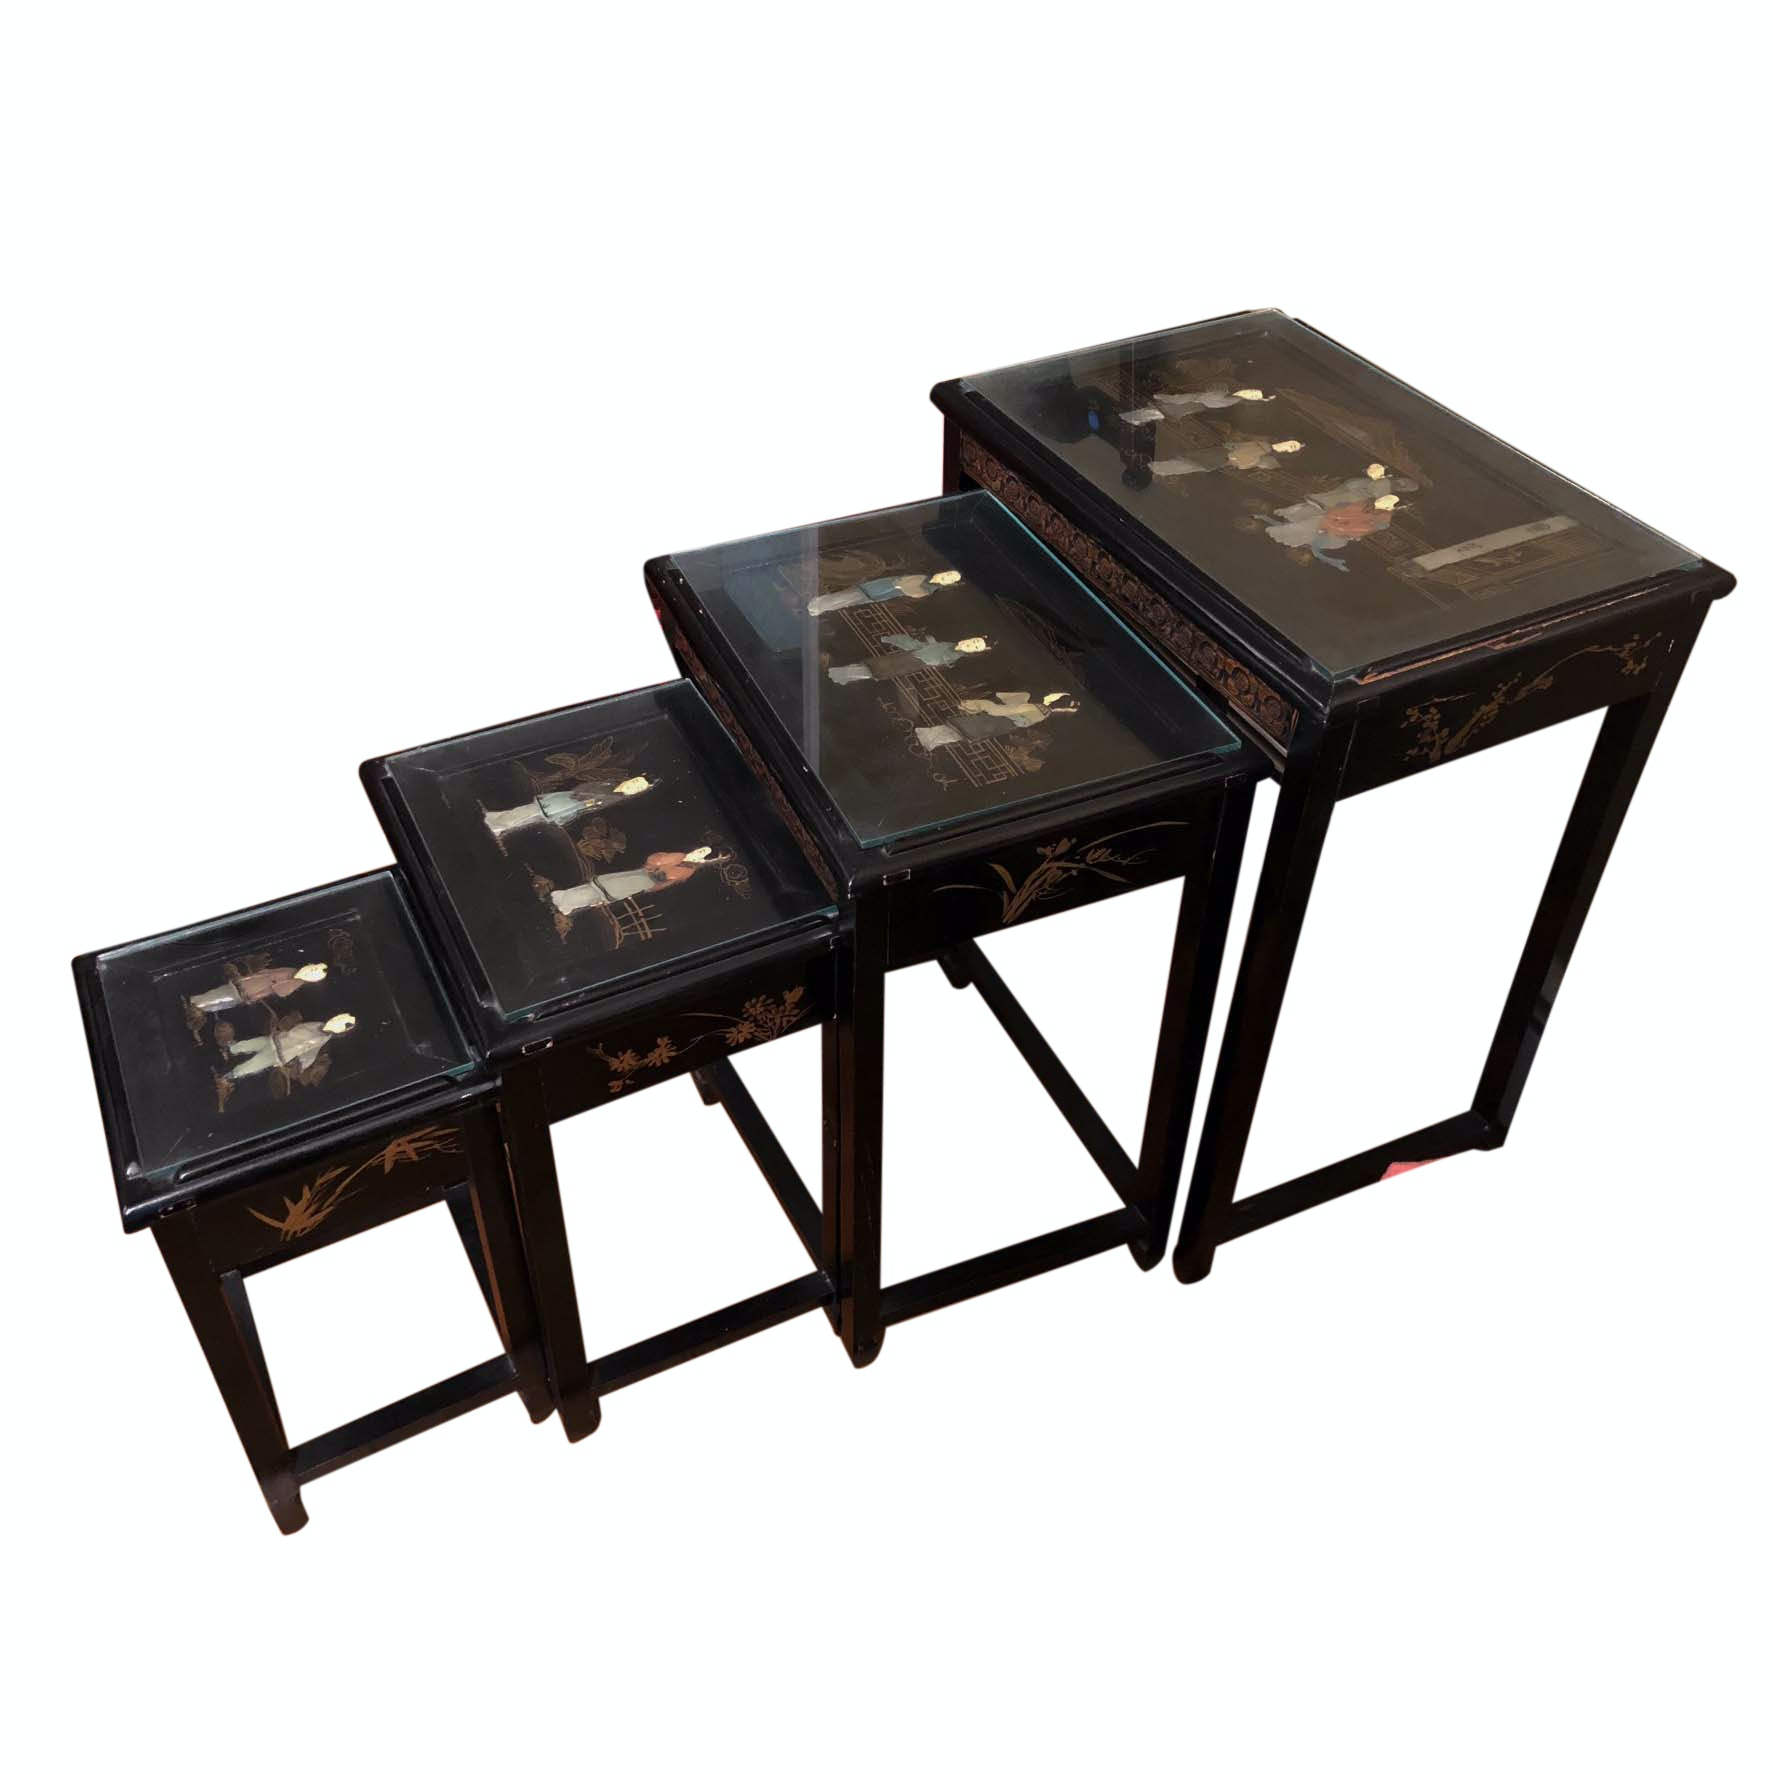 Vintage Chinese Carved and Inlaid Nesting Tables